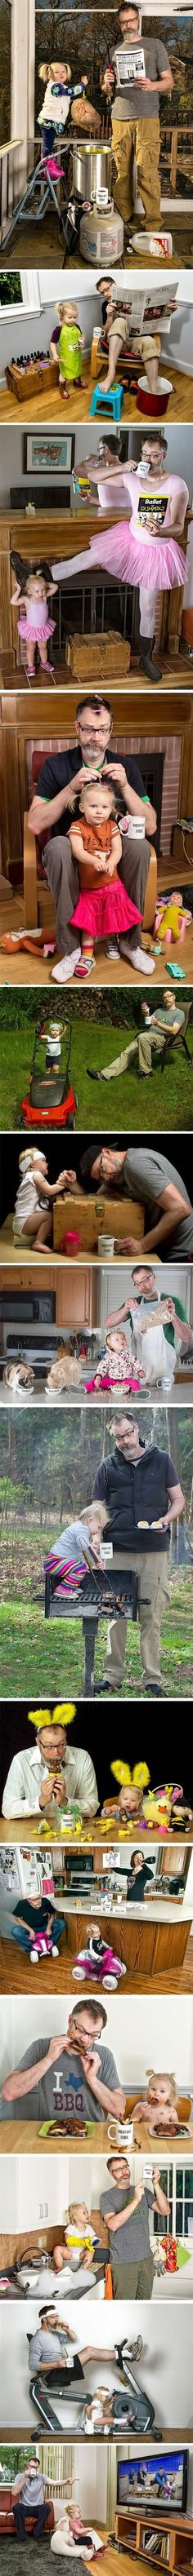 Best father & daughter pictures. Coffee mug in every picture-important.